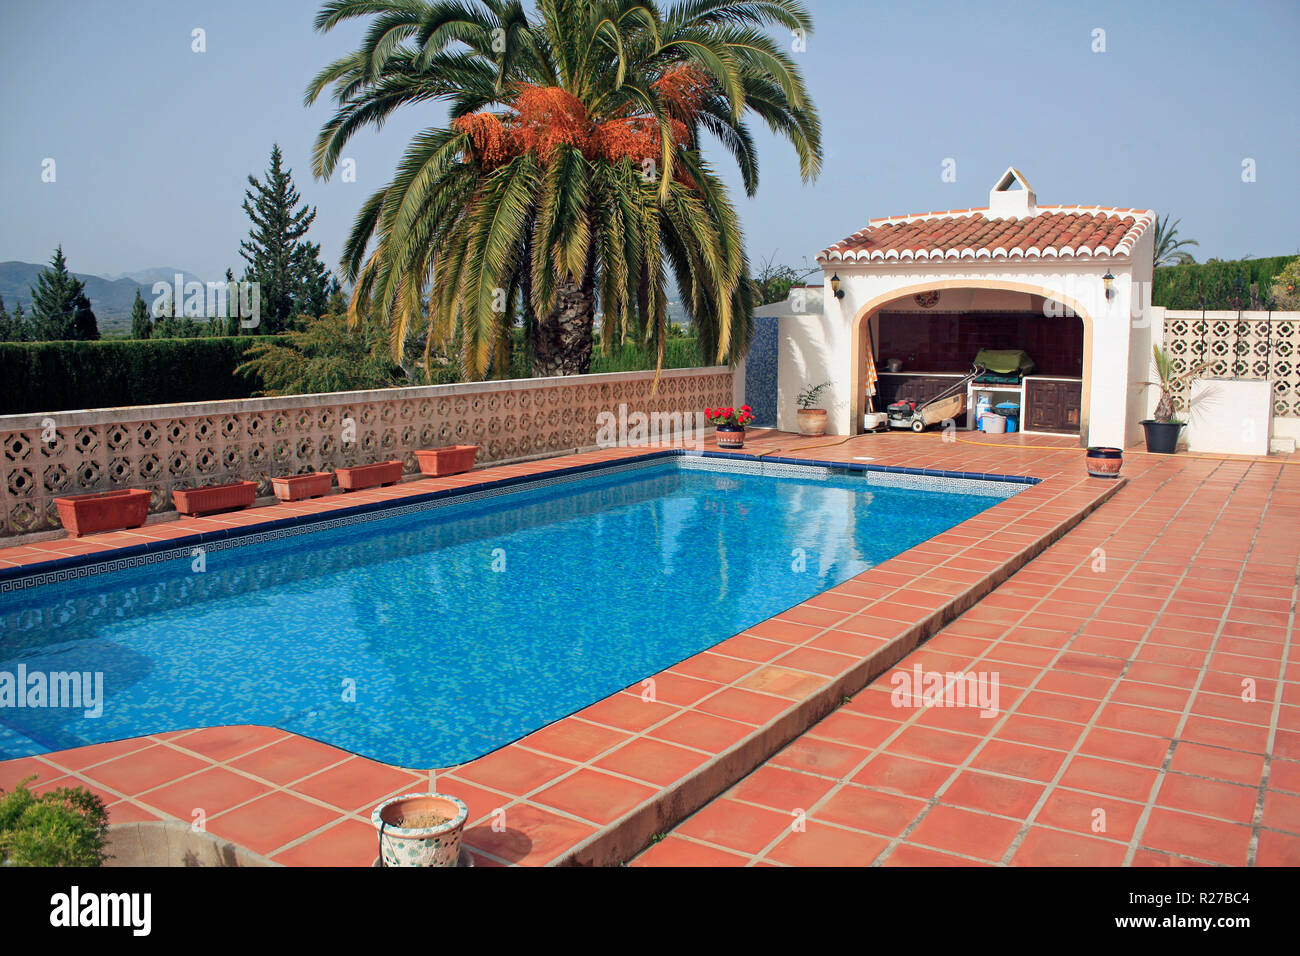 Ferienhaus Mit Pool In Xabia Montgo Javea Stock Photos Montgo Javea Stock Images Alamy